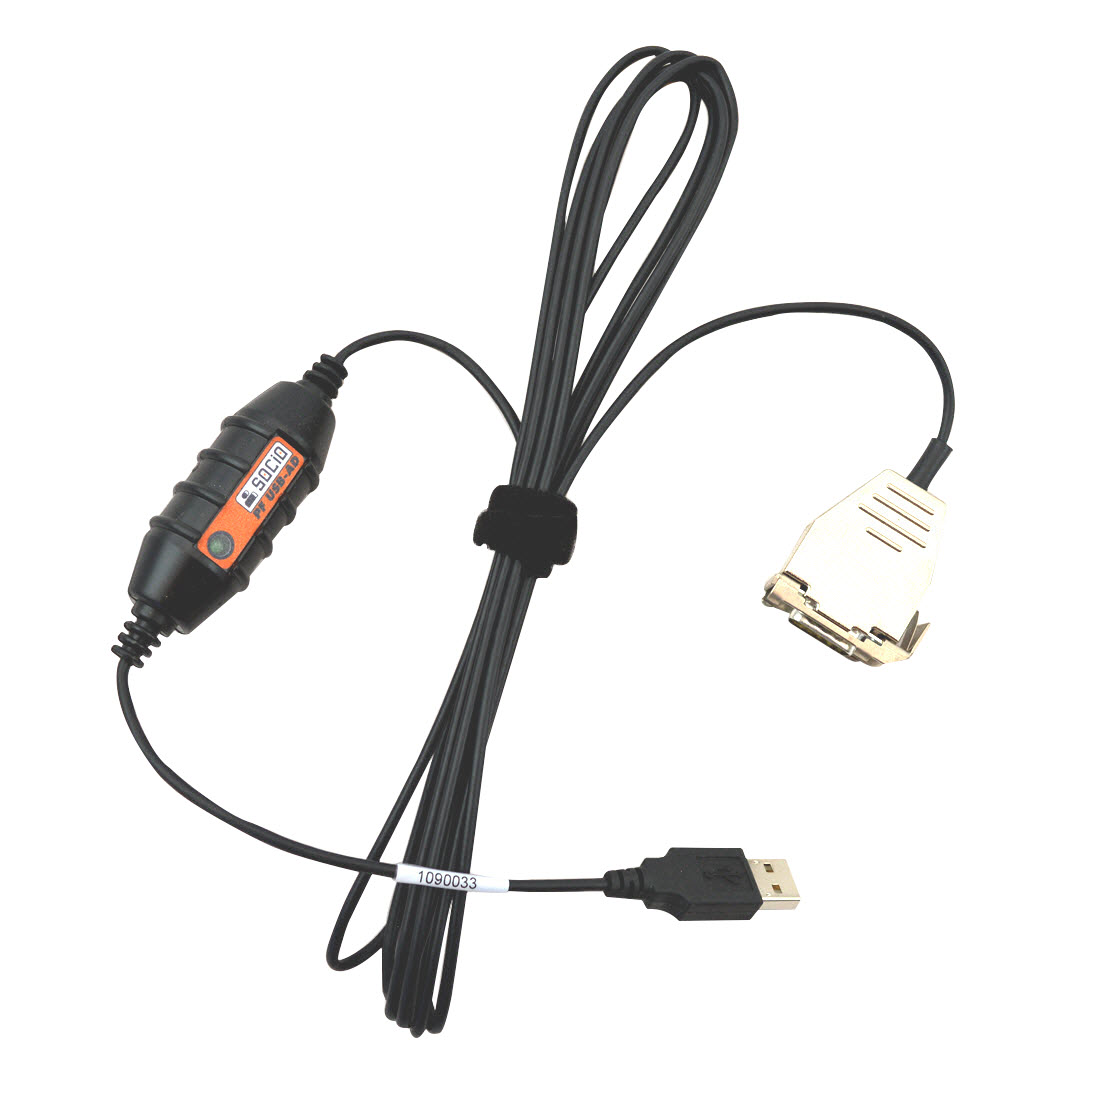 USB Cable For Tecnomotor Socio 300